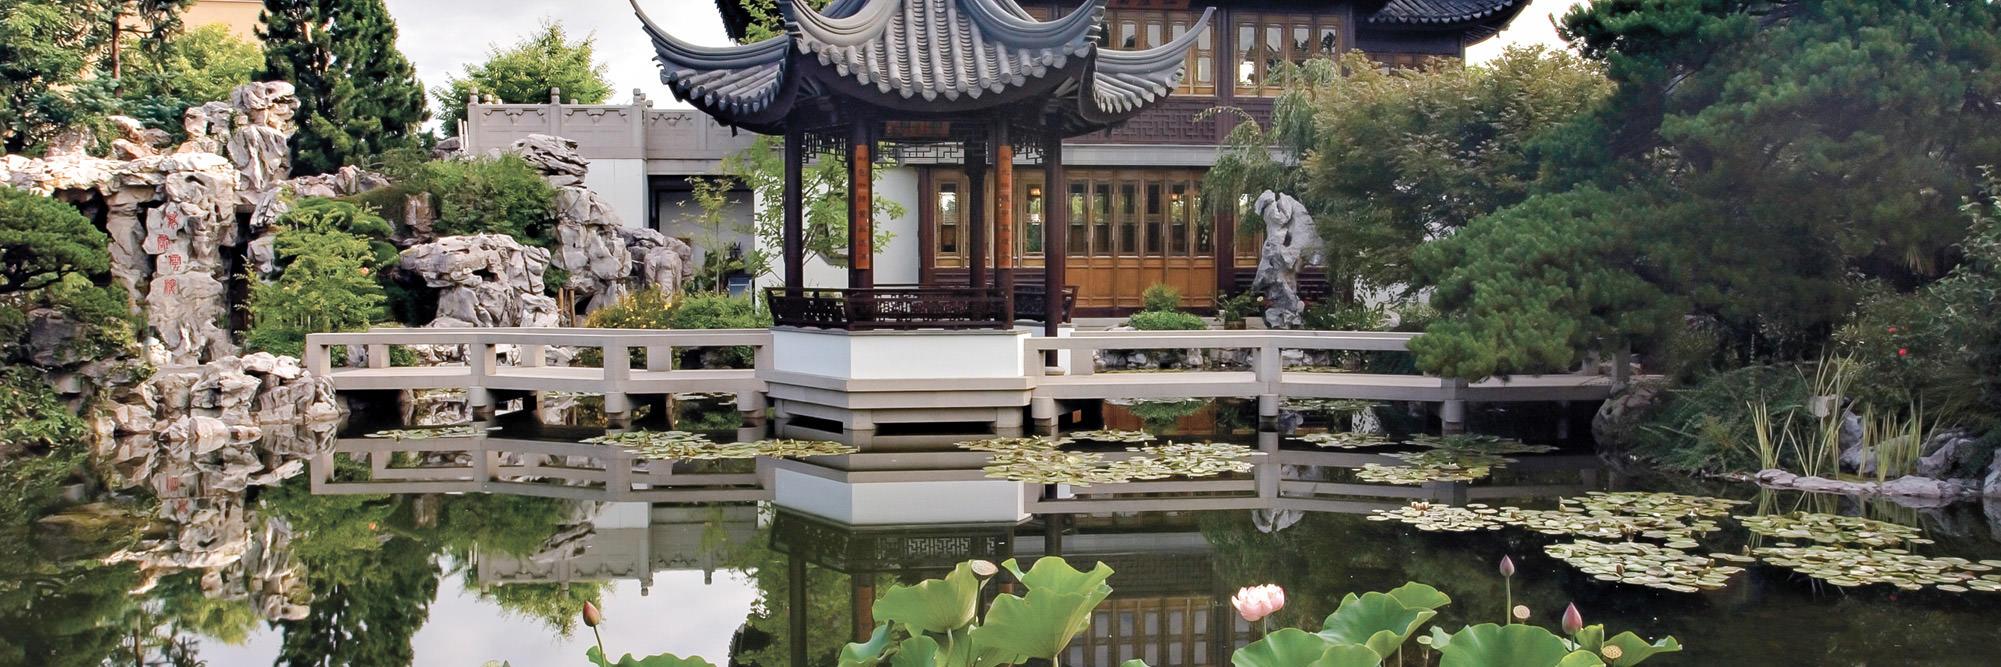 5 ways to experience lan su chinese garden in the rain travel oregon - Chinese Garden Portland